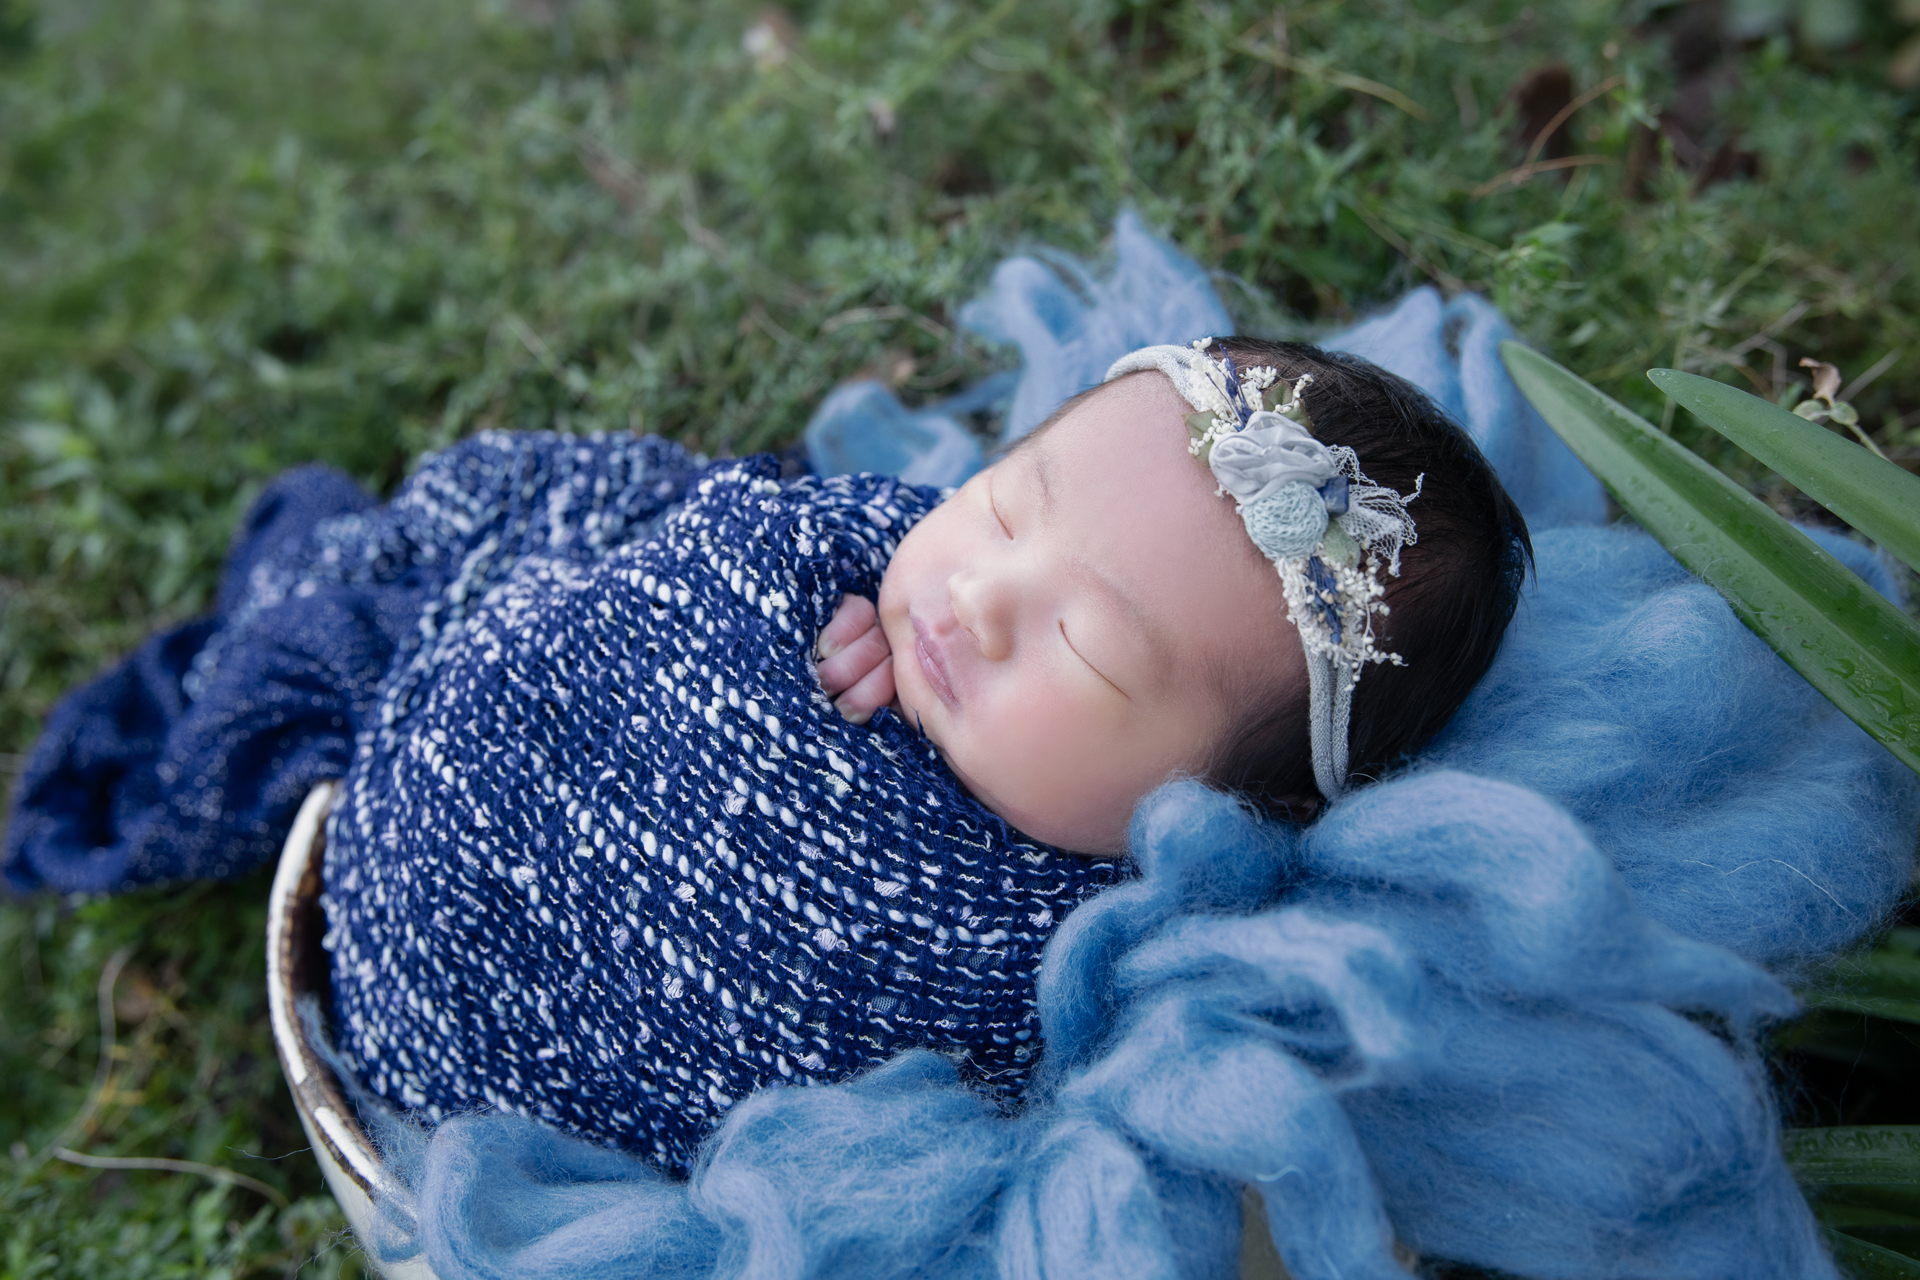 Newborn wearing blue headband and blue wrap rests on blue round basket decorated with blue carpet outdoors.